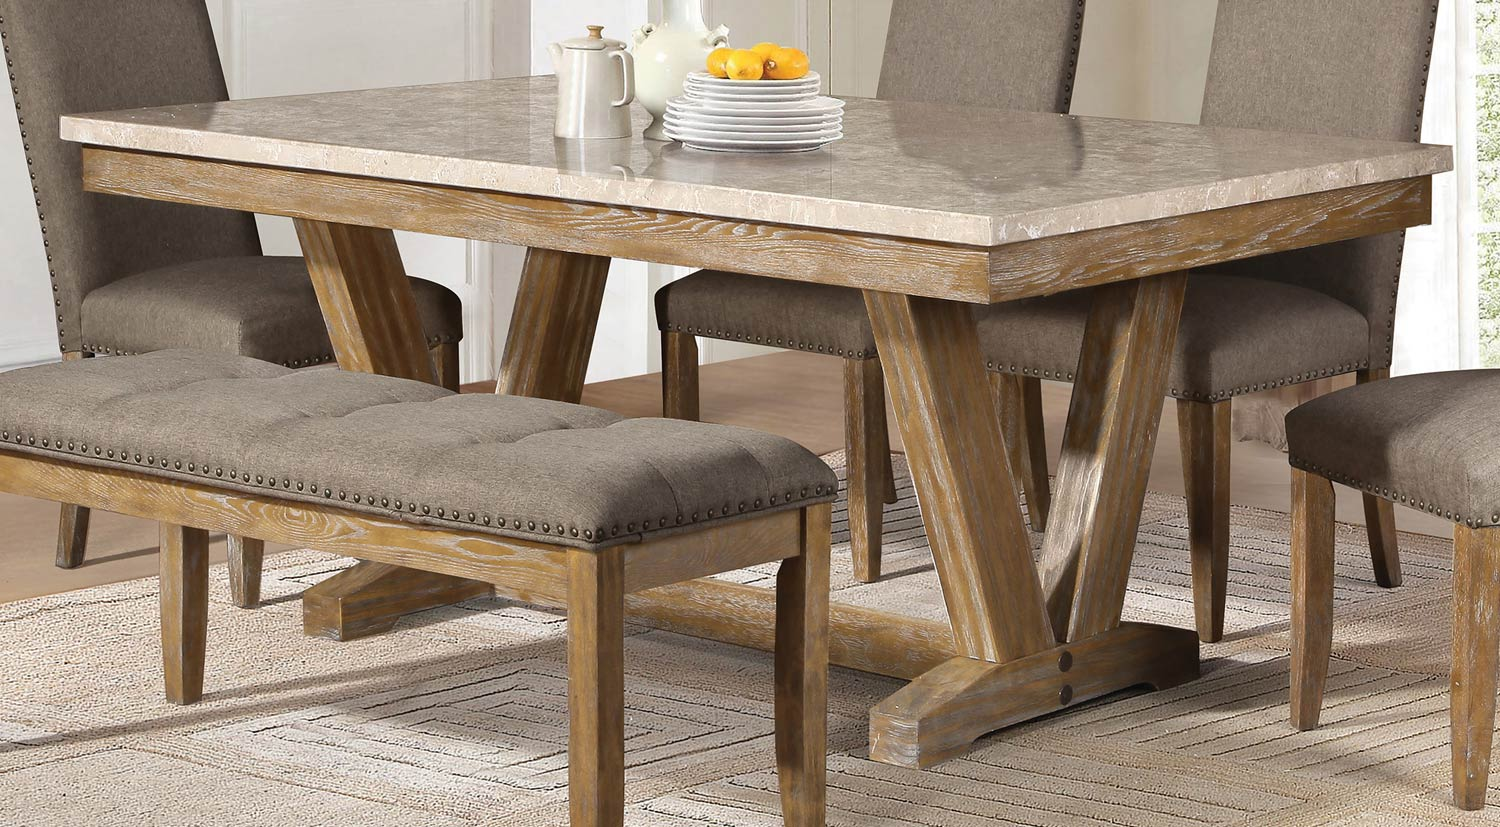 Homelegance Jemez Dining Table Faux Marble Top Weathered Wood 5470 72 P 76974 on Weathered Oak Bedroom Furniture